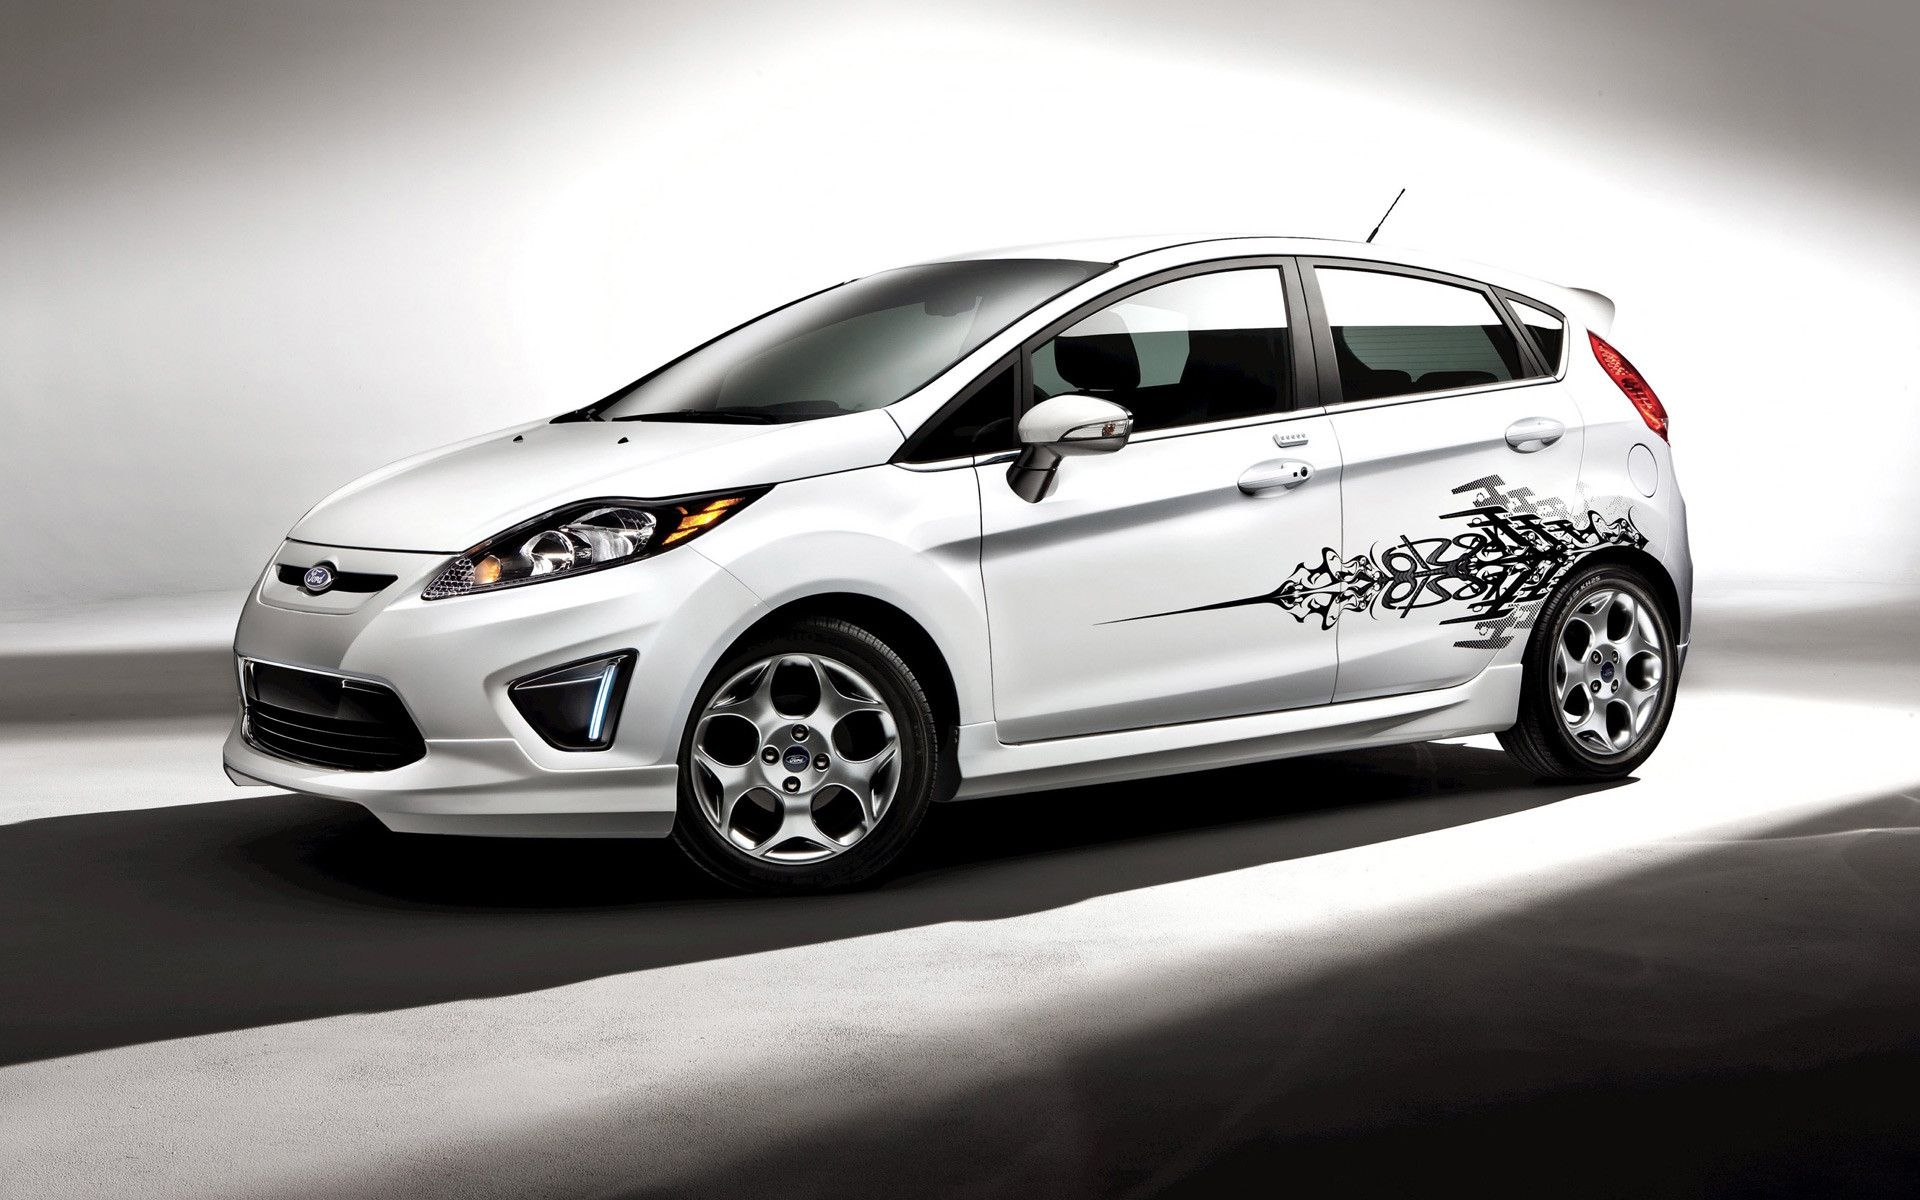 ford-fiesta-Ford-Fiesta-Cave-with-ford-fiesta-wallpape-wallpaper-wp3601018